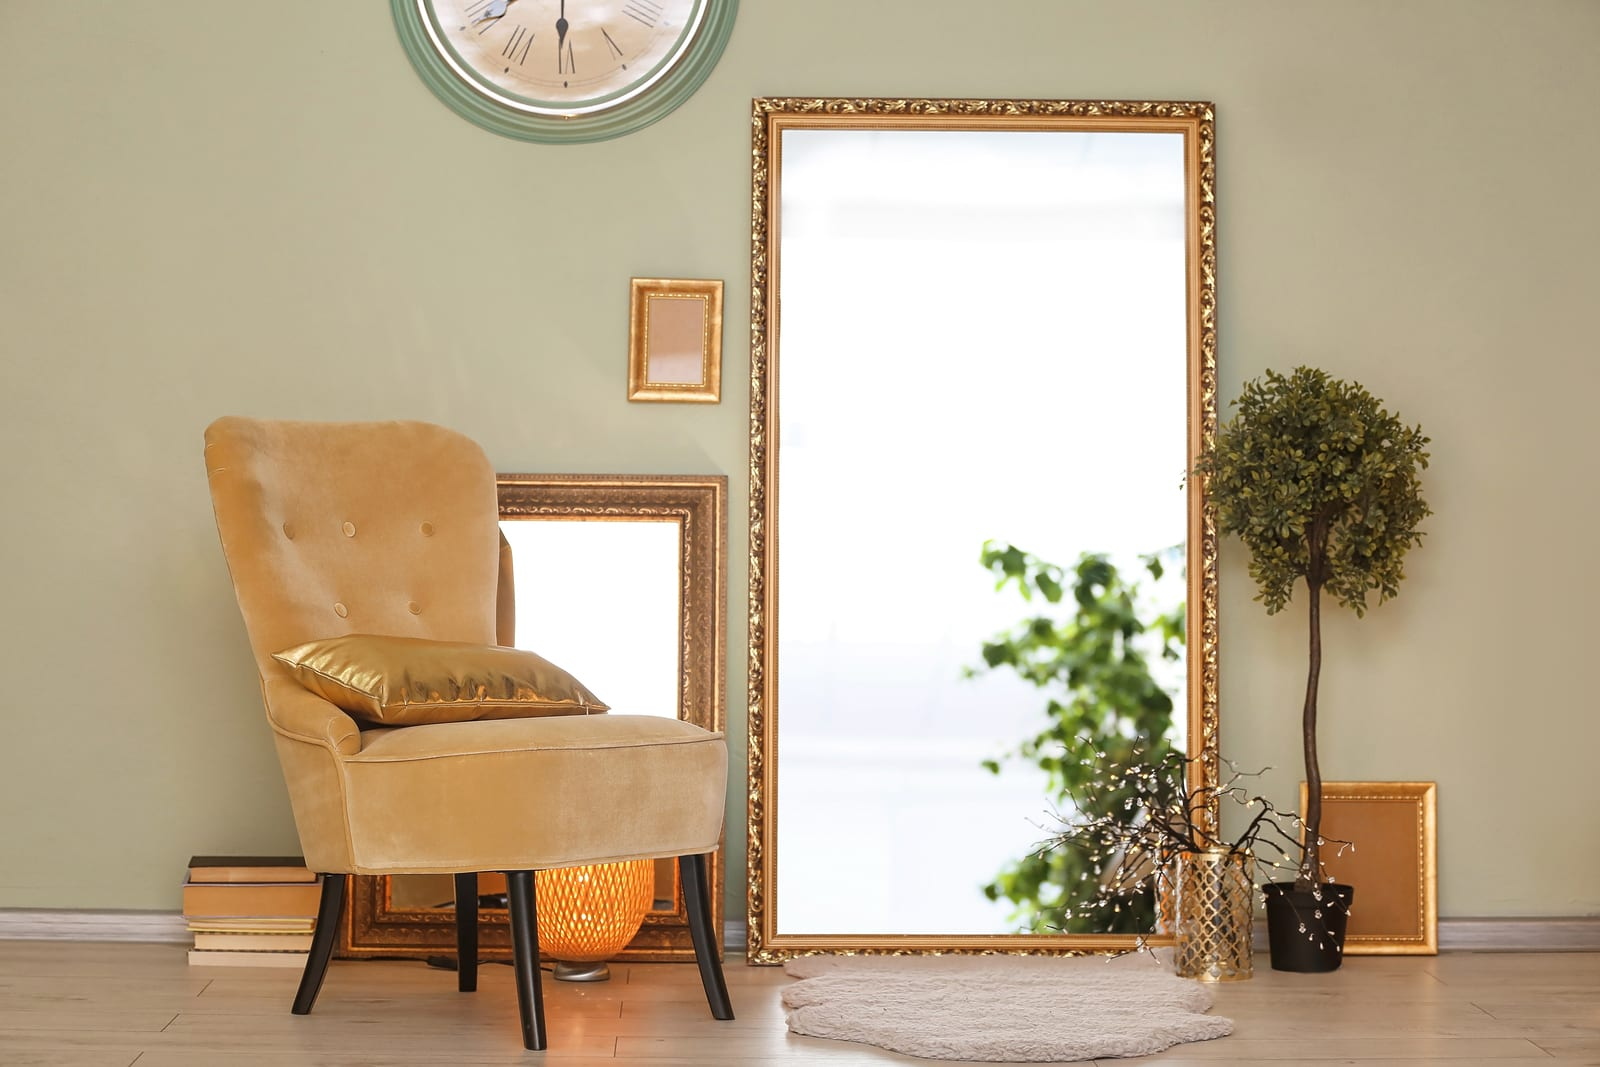 Use Mirrors to Spruce up Your Home